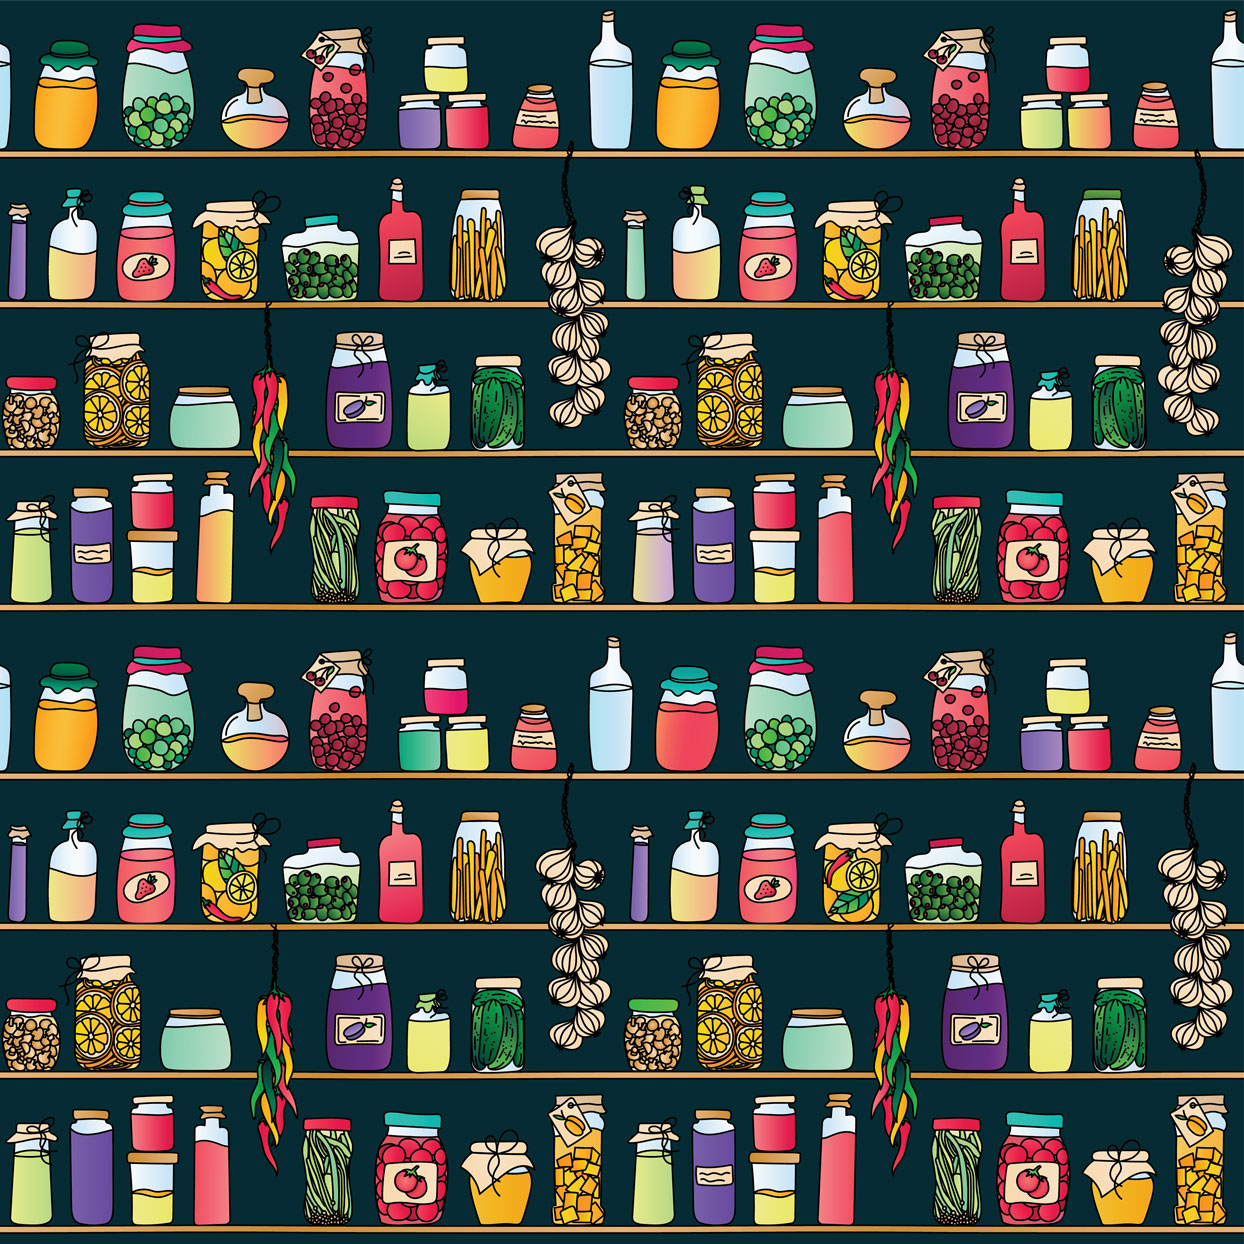 pantry illustration